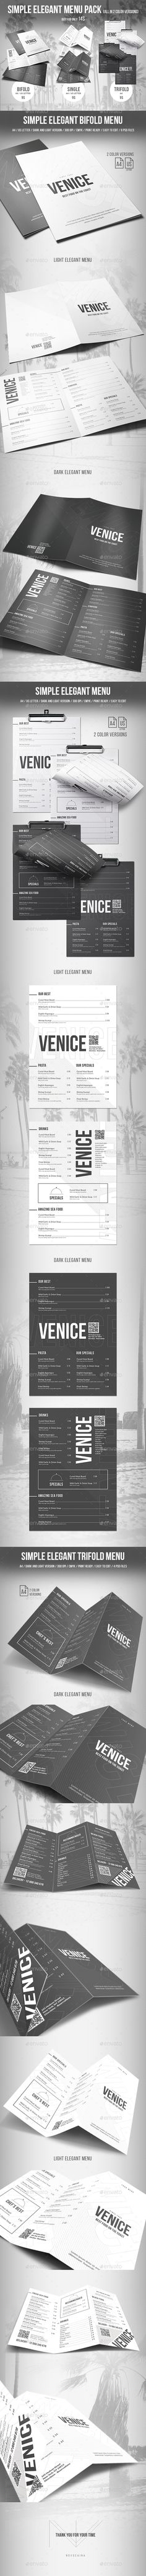 Simple Elegant Menu Pack (Bifold - Trifold - Single) - 2 Color Versions